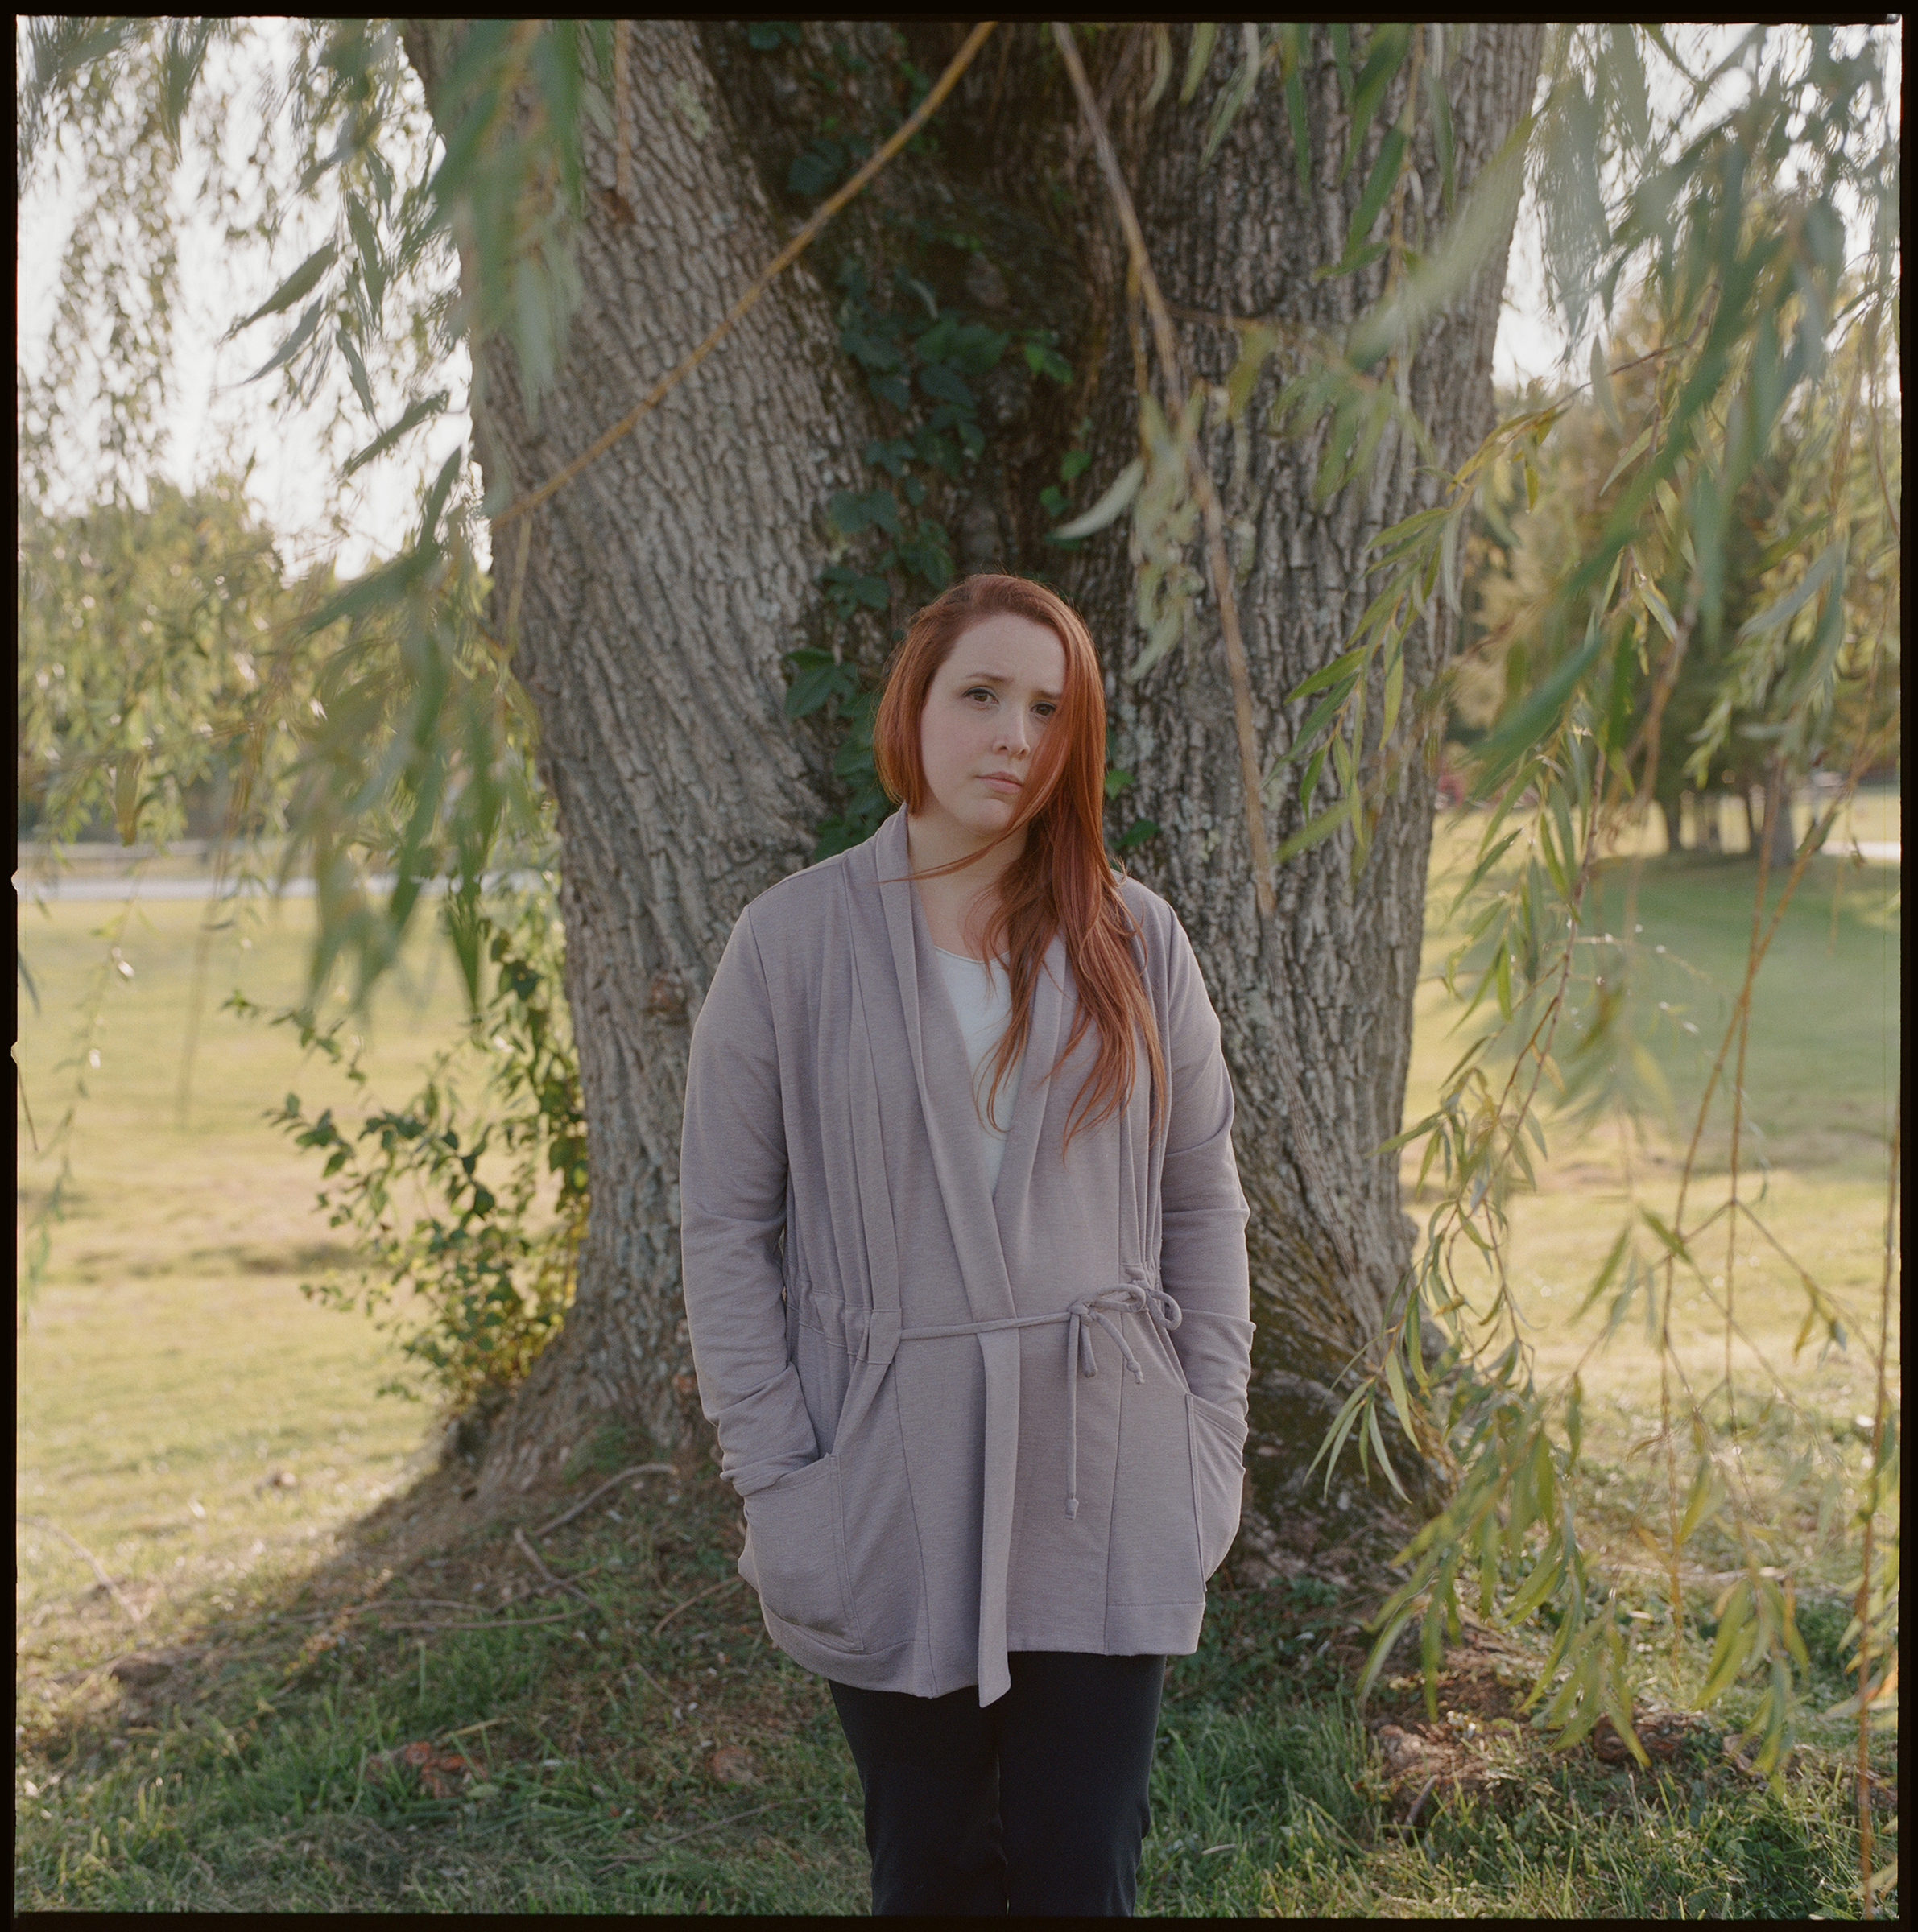 Dylan Farrow.  Dylan Farrow Is Back in the Public Eye. This Time It's on Her Terms,  Sept. 29.